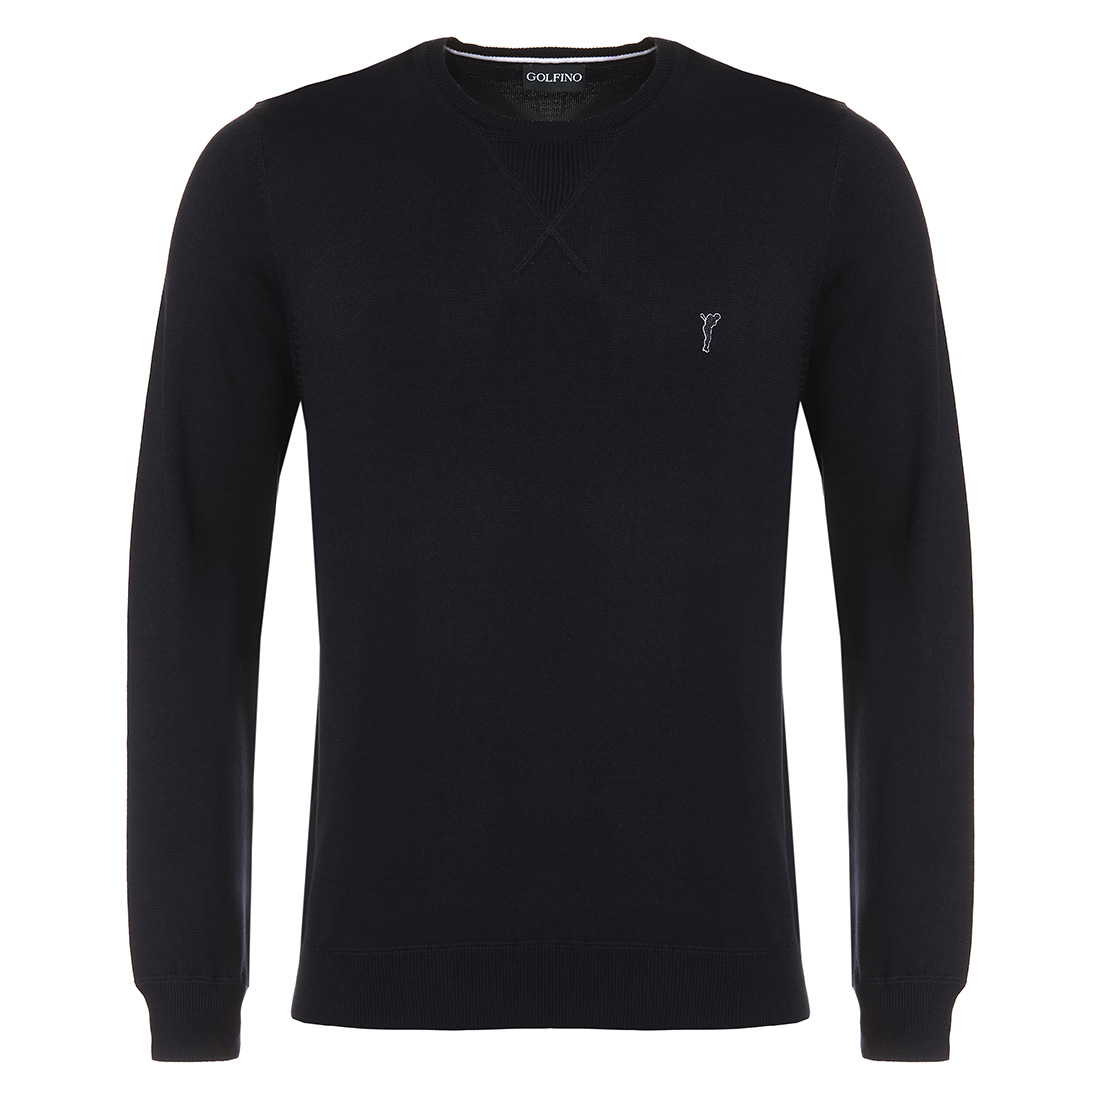 The Palermo Strickpullover